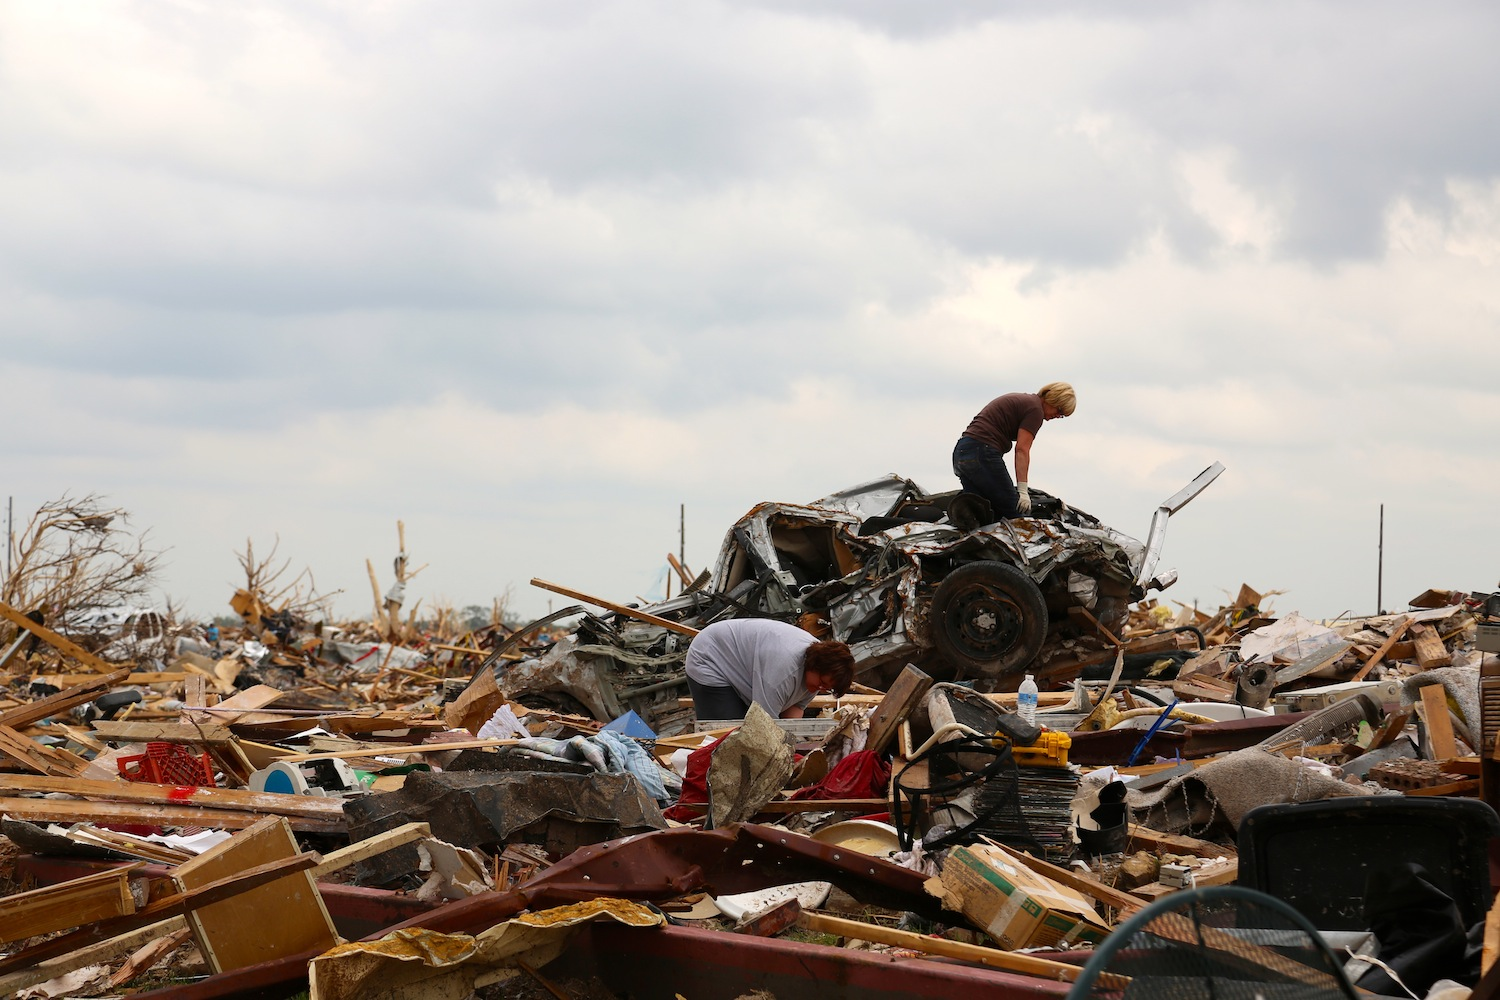 Kim Schwab of Oklahoma City (standing on the car), looks for a rosary among the rubble of her home.